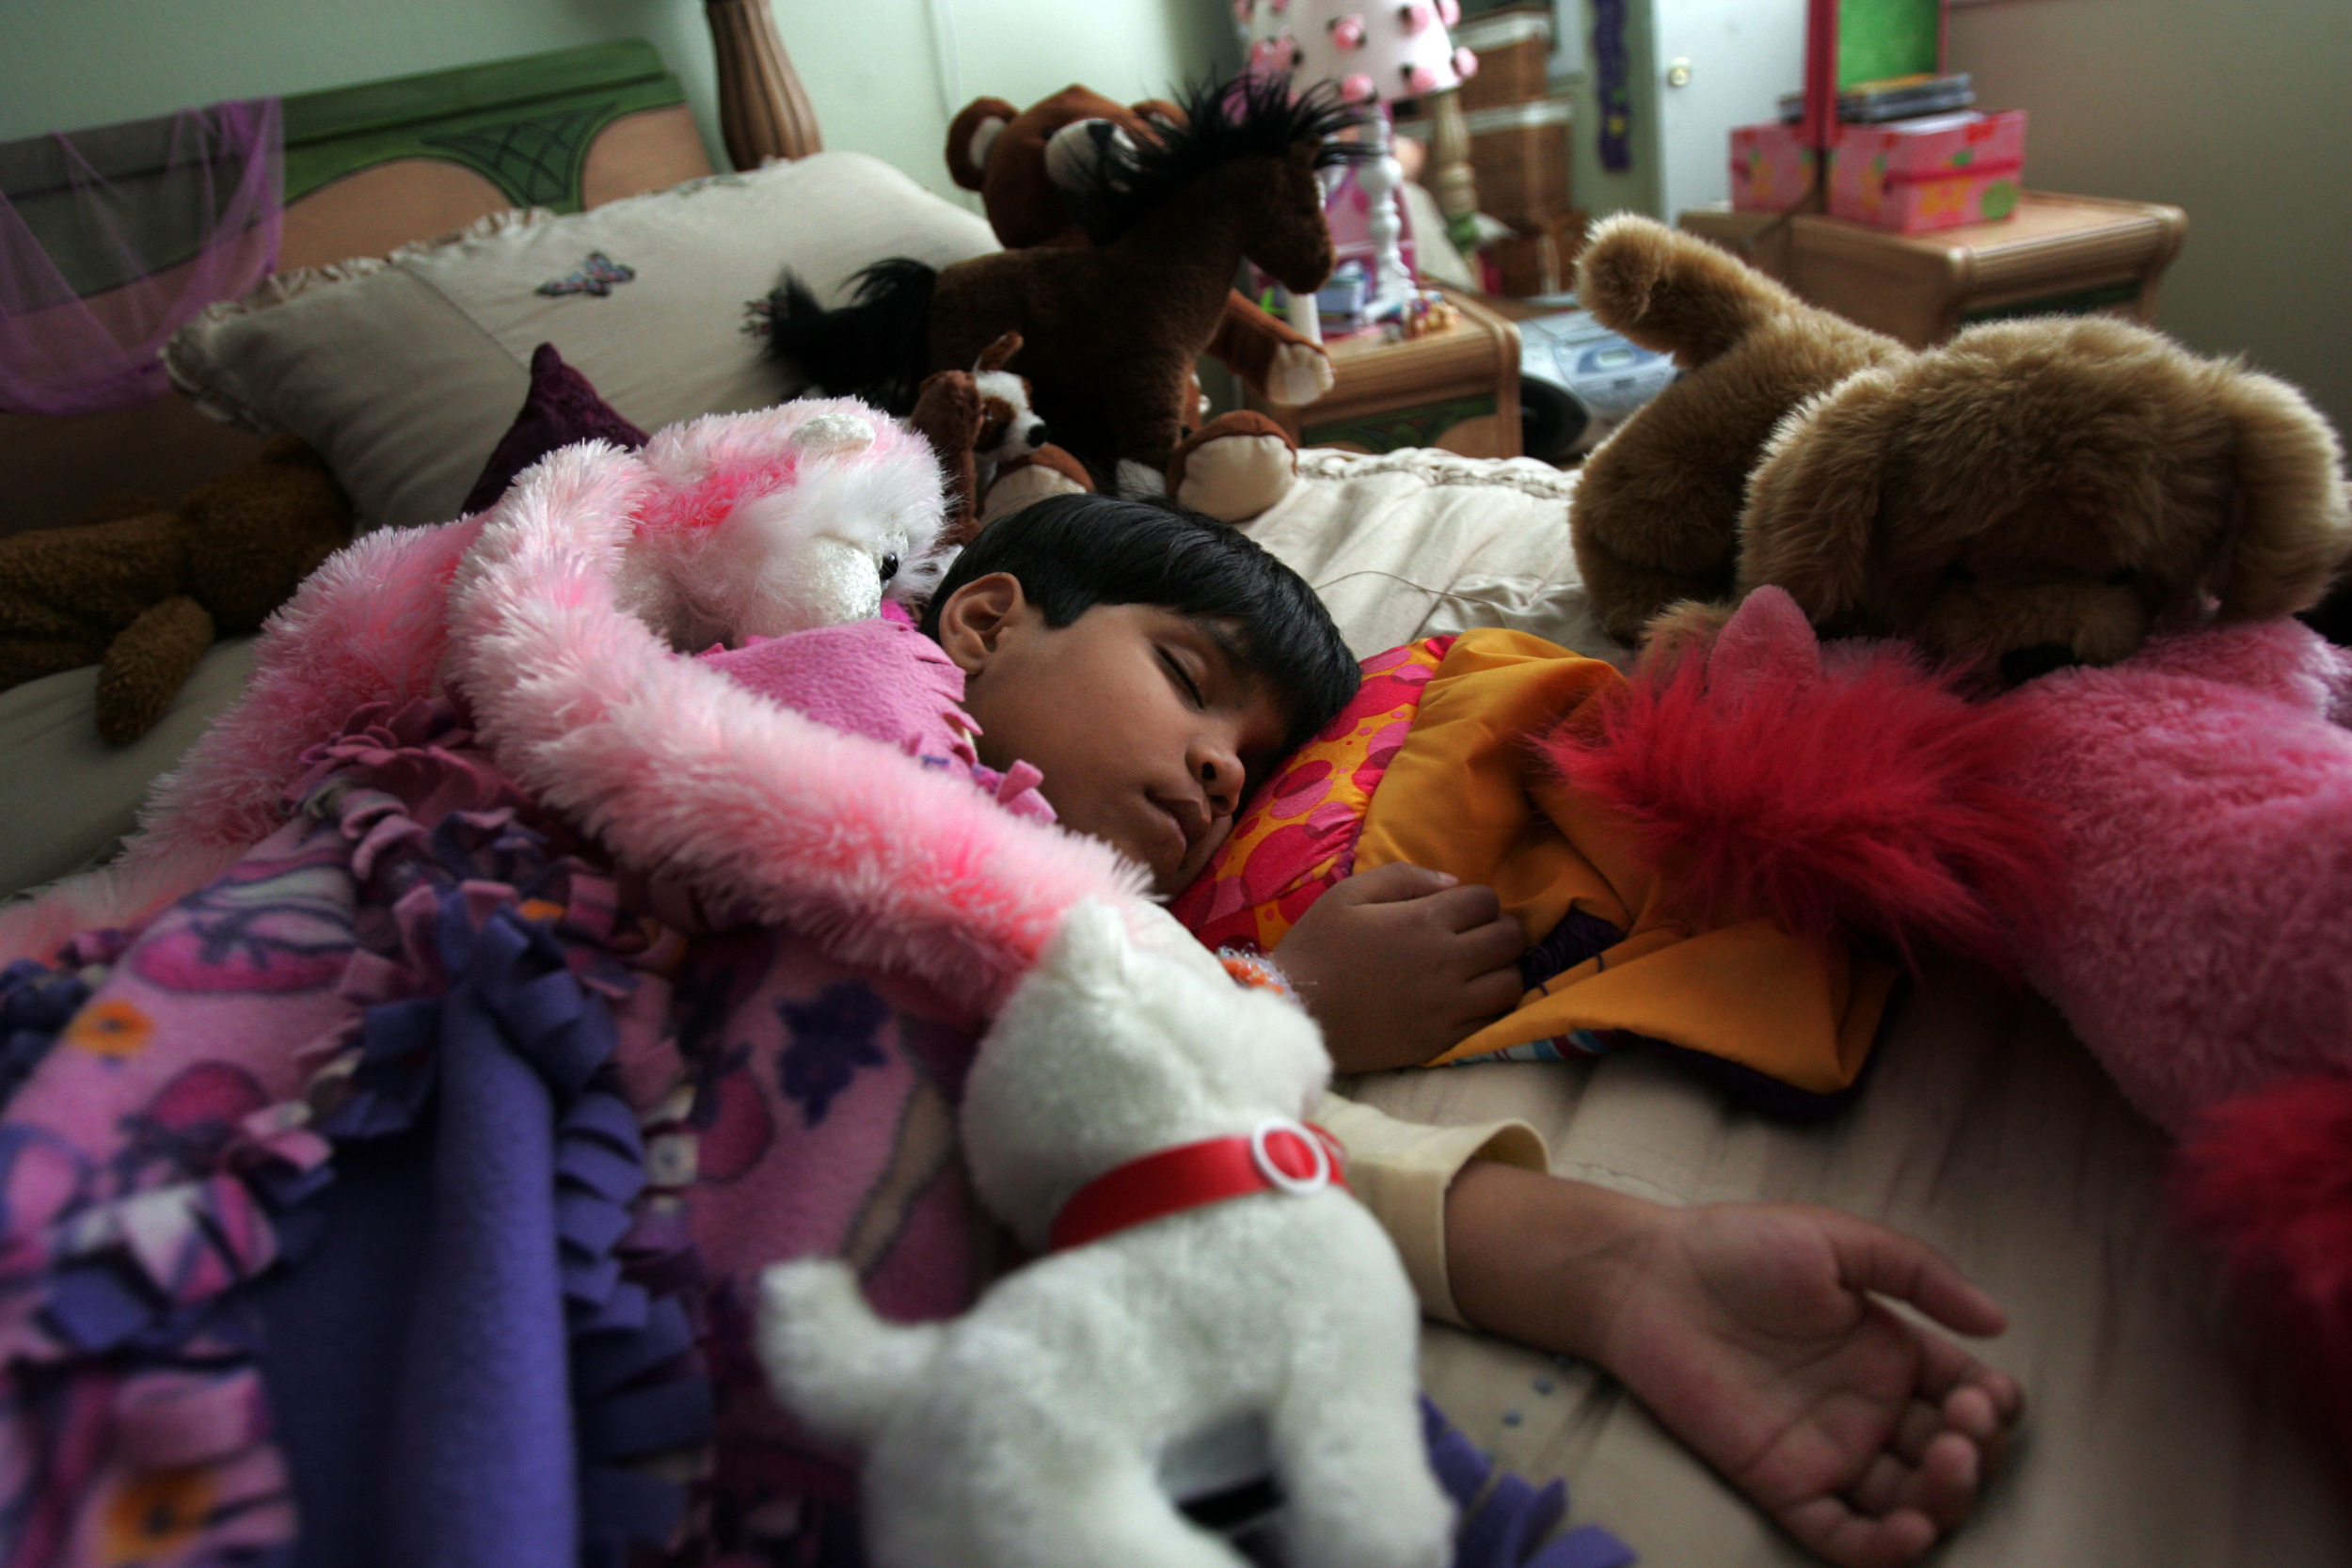 Kajal sleeps amongst a pile of stuffed animals at a host family's house during her nap Tuesday, April 10, 2007 in Franklin, Tenn. On Kajal's arrival to the US she was showered with toys.